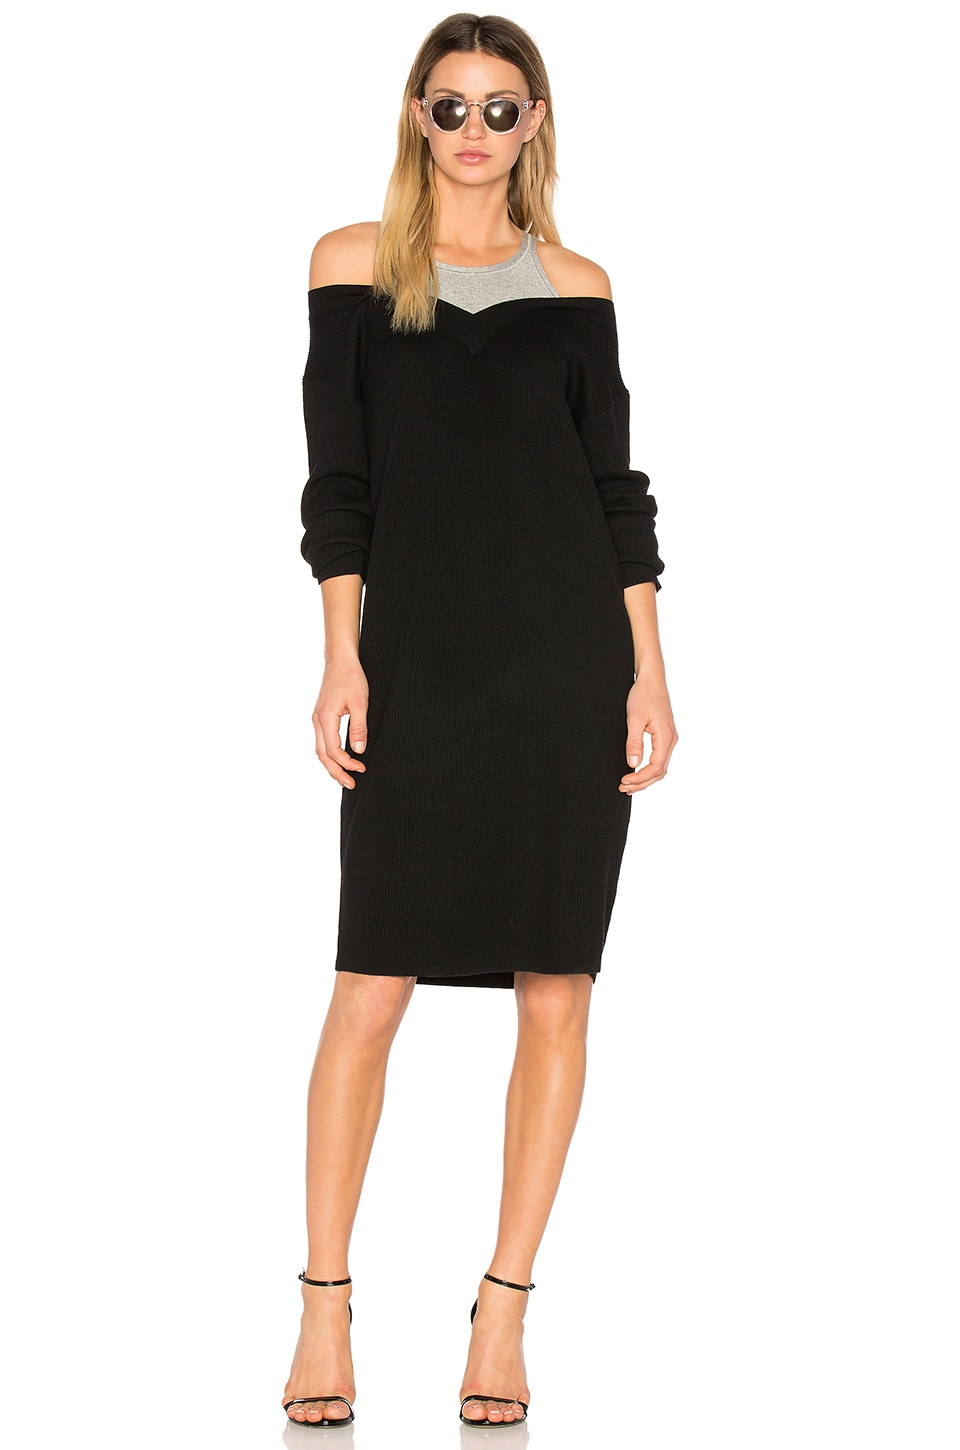 410b860c3 T by Alexander Wang Pullover Dress with Inner Tank in Black